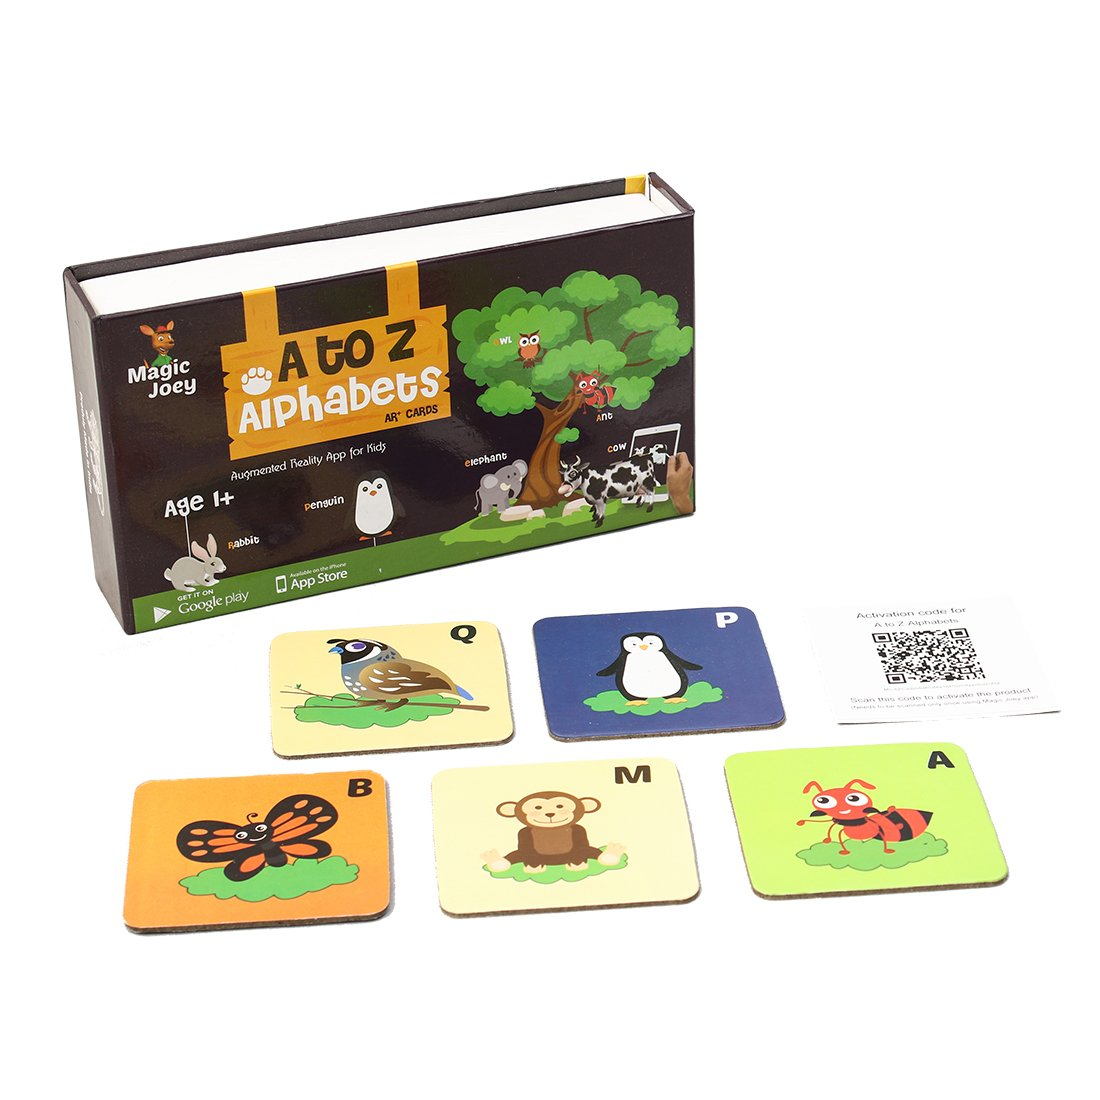 Augment Works Magic Joey Augmented Reality 26 Flash Cards A-Z Alphabets With Animals, Birds And Insects In 3D product image